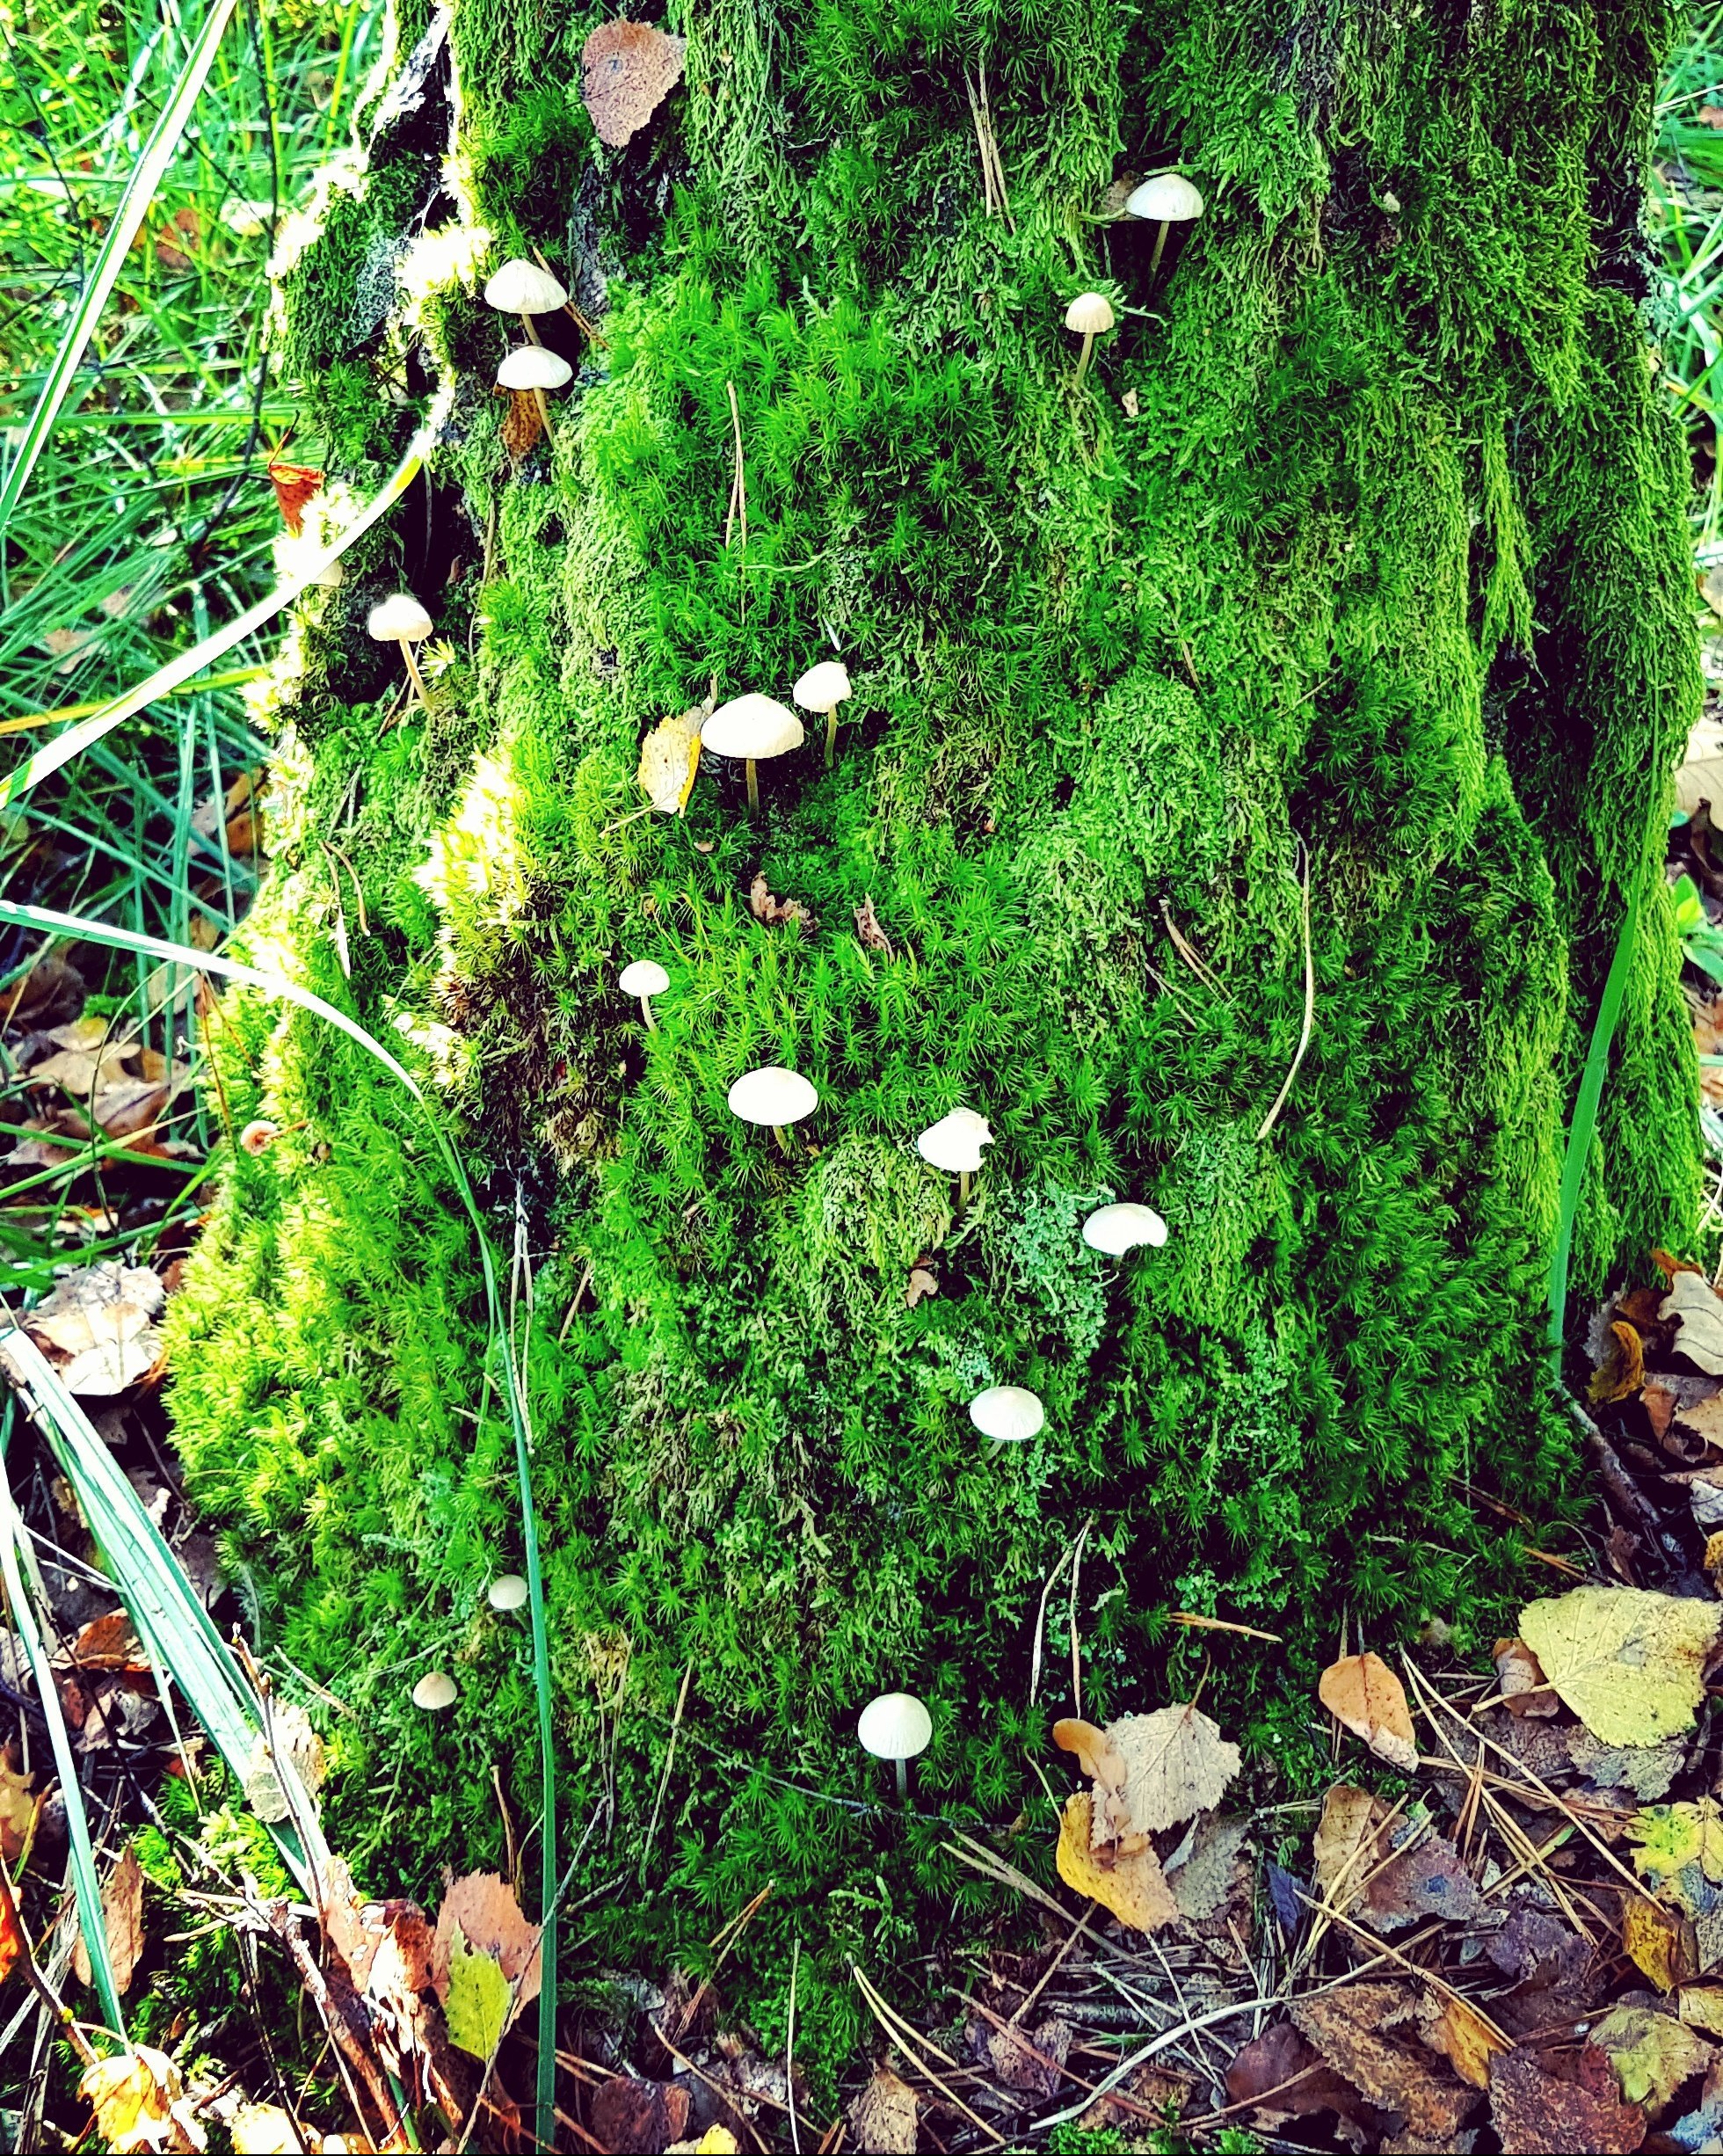 mushroom trail at #Fontainebleau #hike